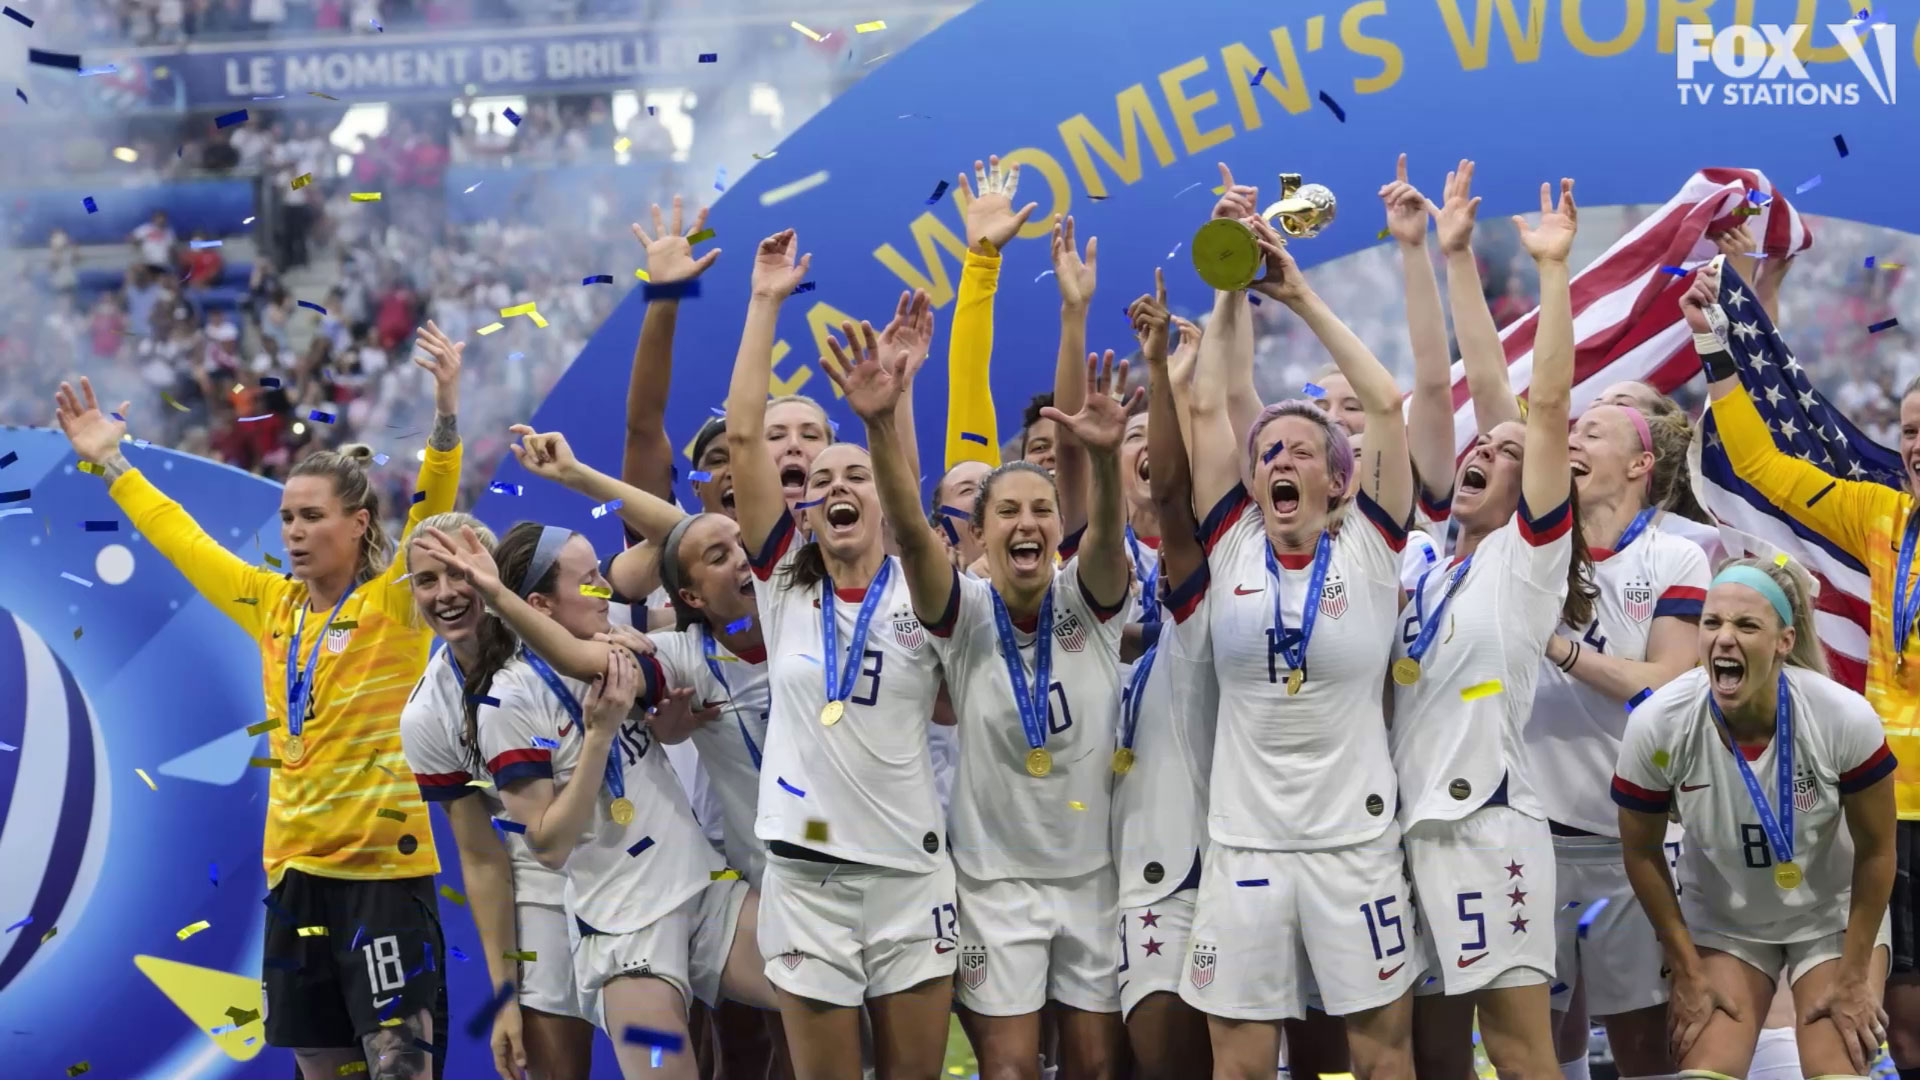 USWNT equal pay: Senator proposes bill to withhold 2026 World Cup funds until team paid equal to men